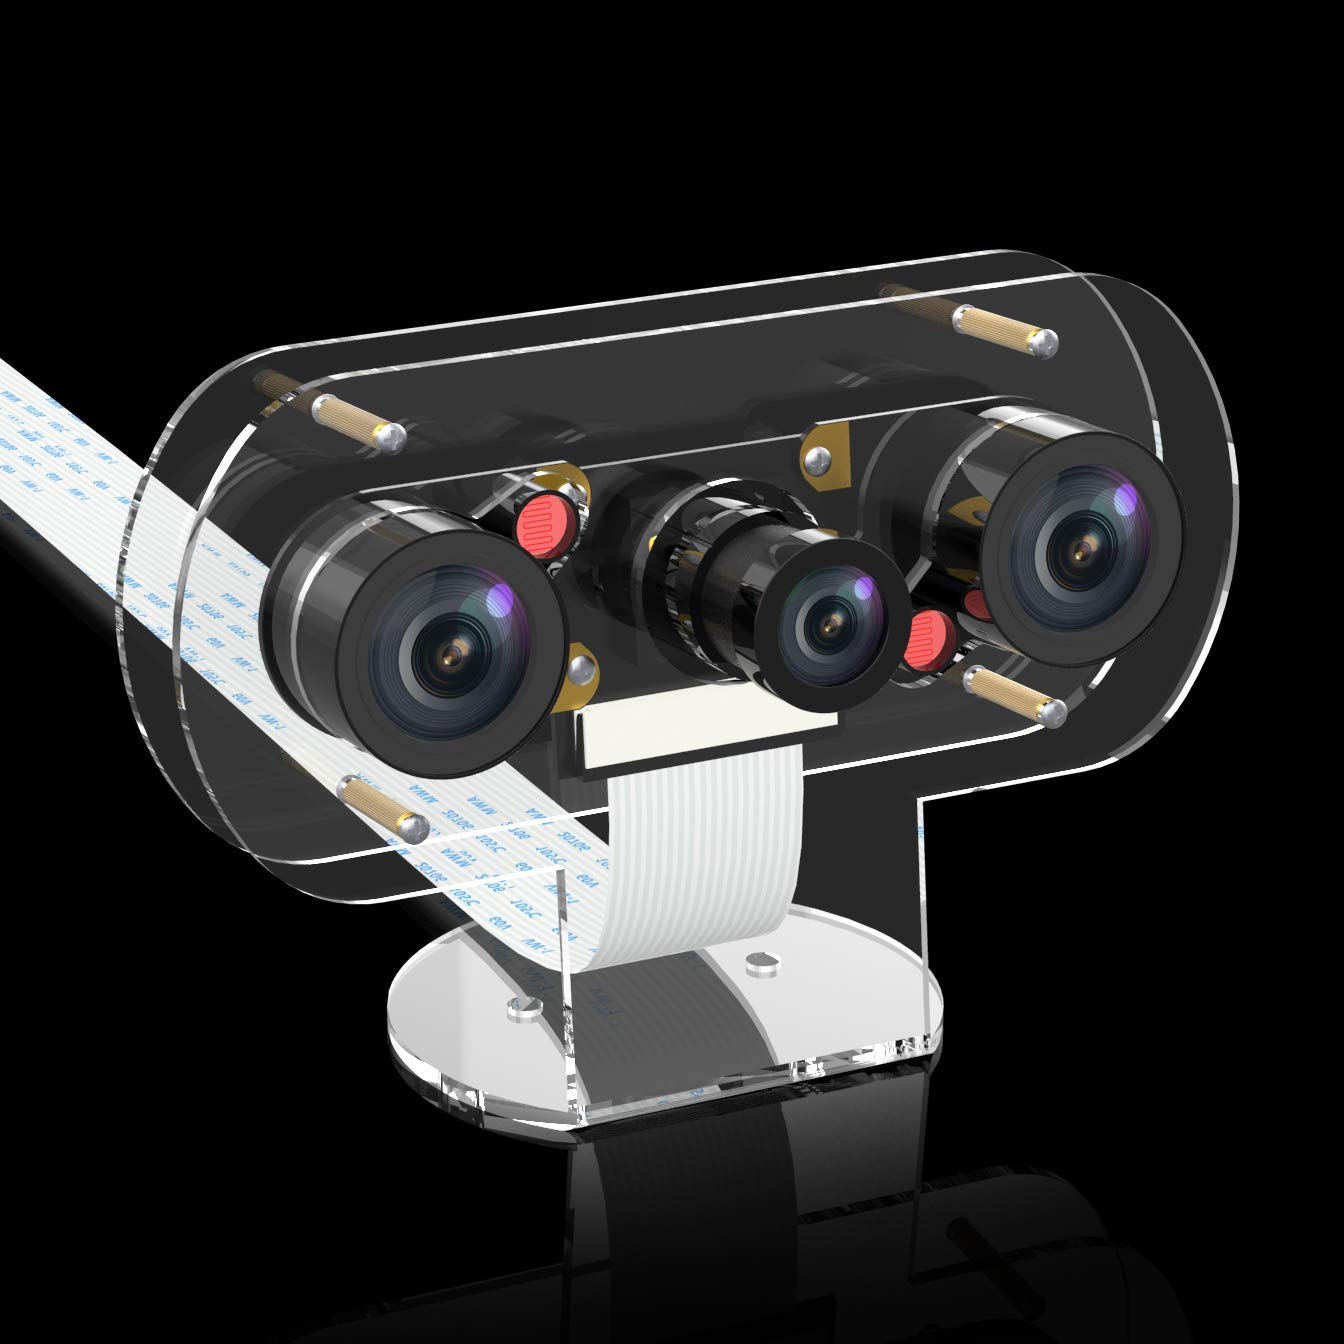 Infrared Night Vision IR Camera for Raspberry Pi 4, Pi 3b+ Video Webcam with Case Suits for 3D Printer